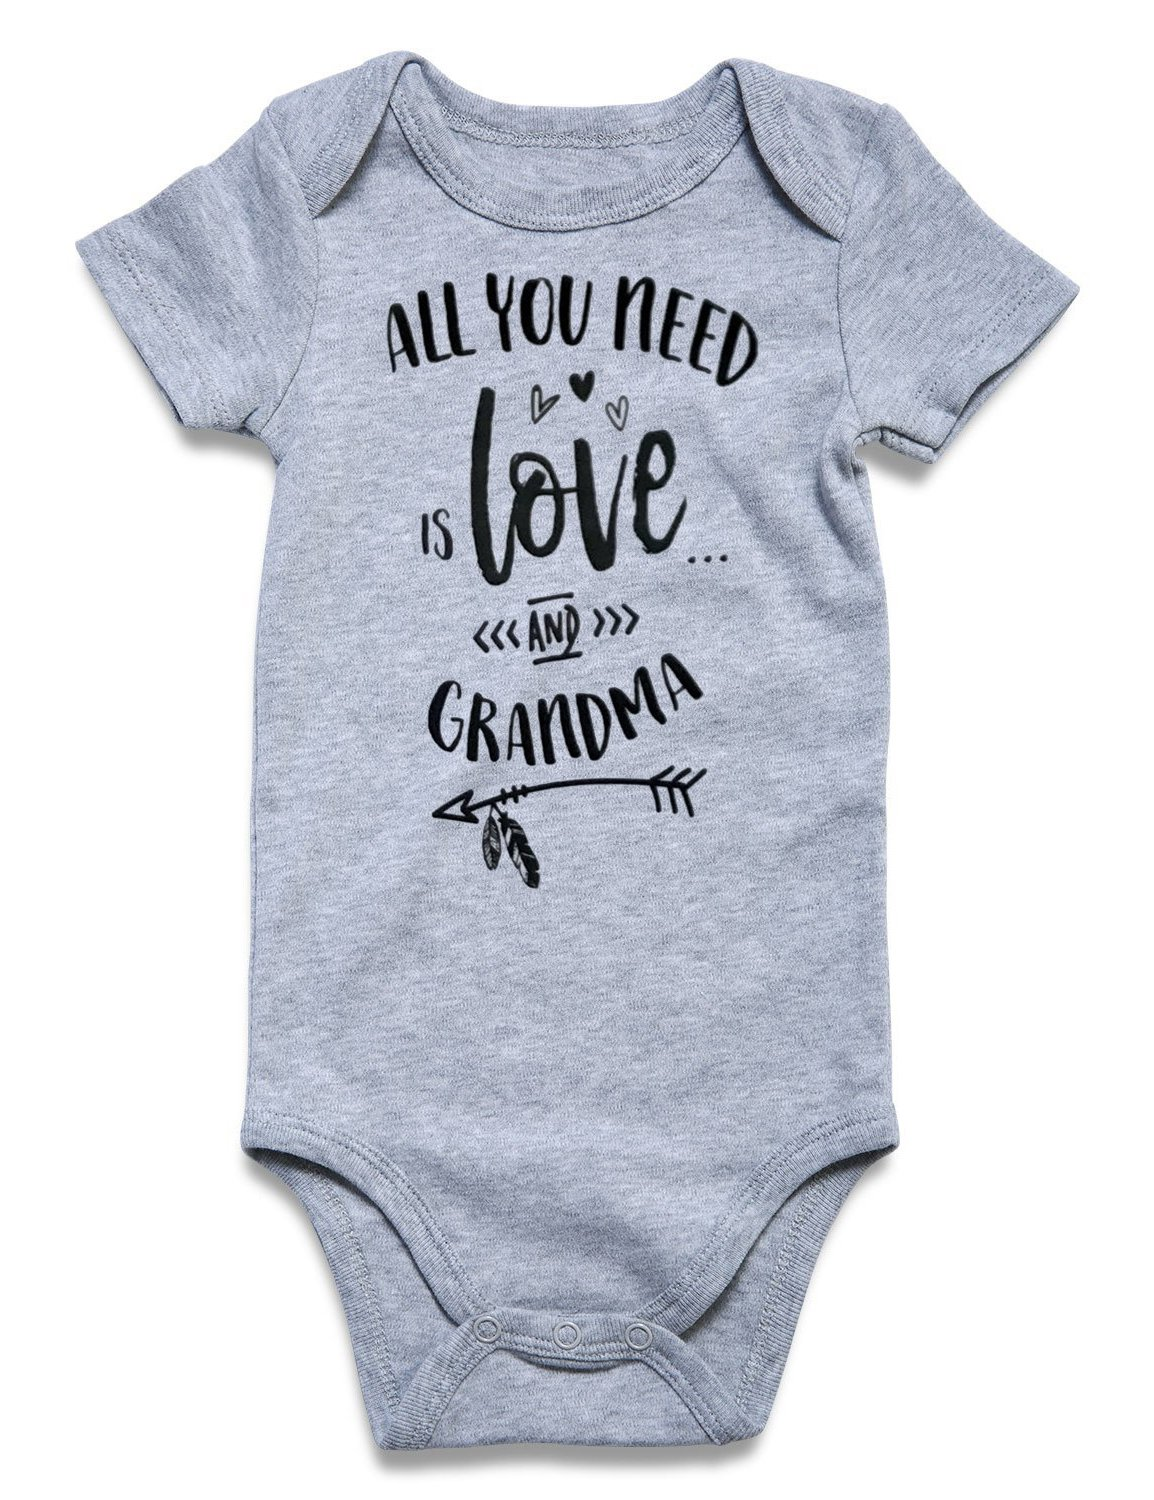 Cutemefy Newborn Happy Birthday Short Sleeves Baby Girls Full Bodysuits Baby Clothes Jumpsuits Overalls Onesie by Cutemefy (Image #1)